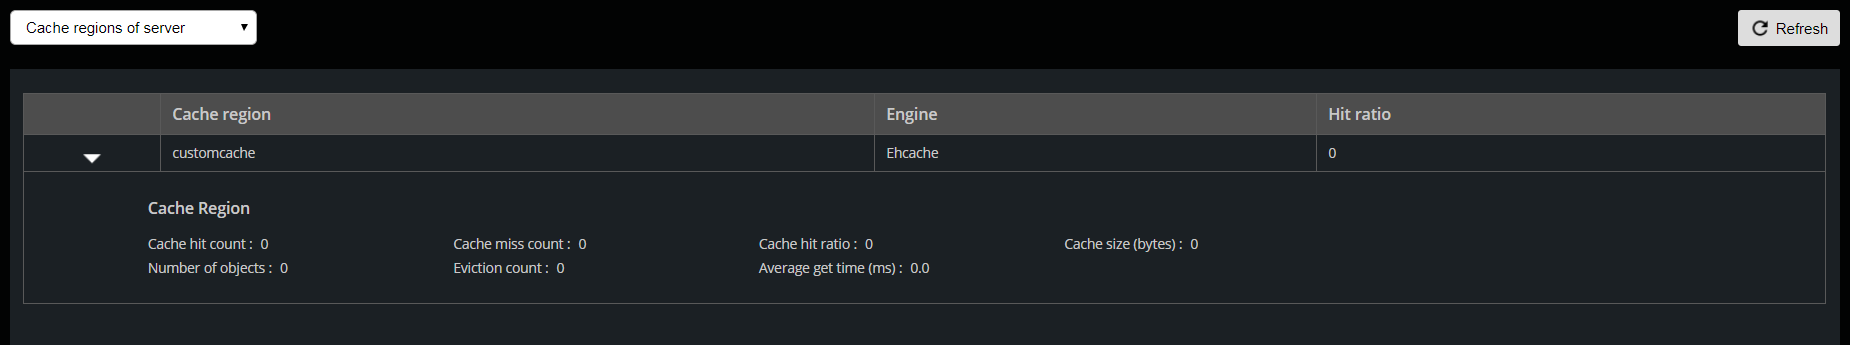 Cache regions of server